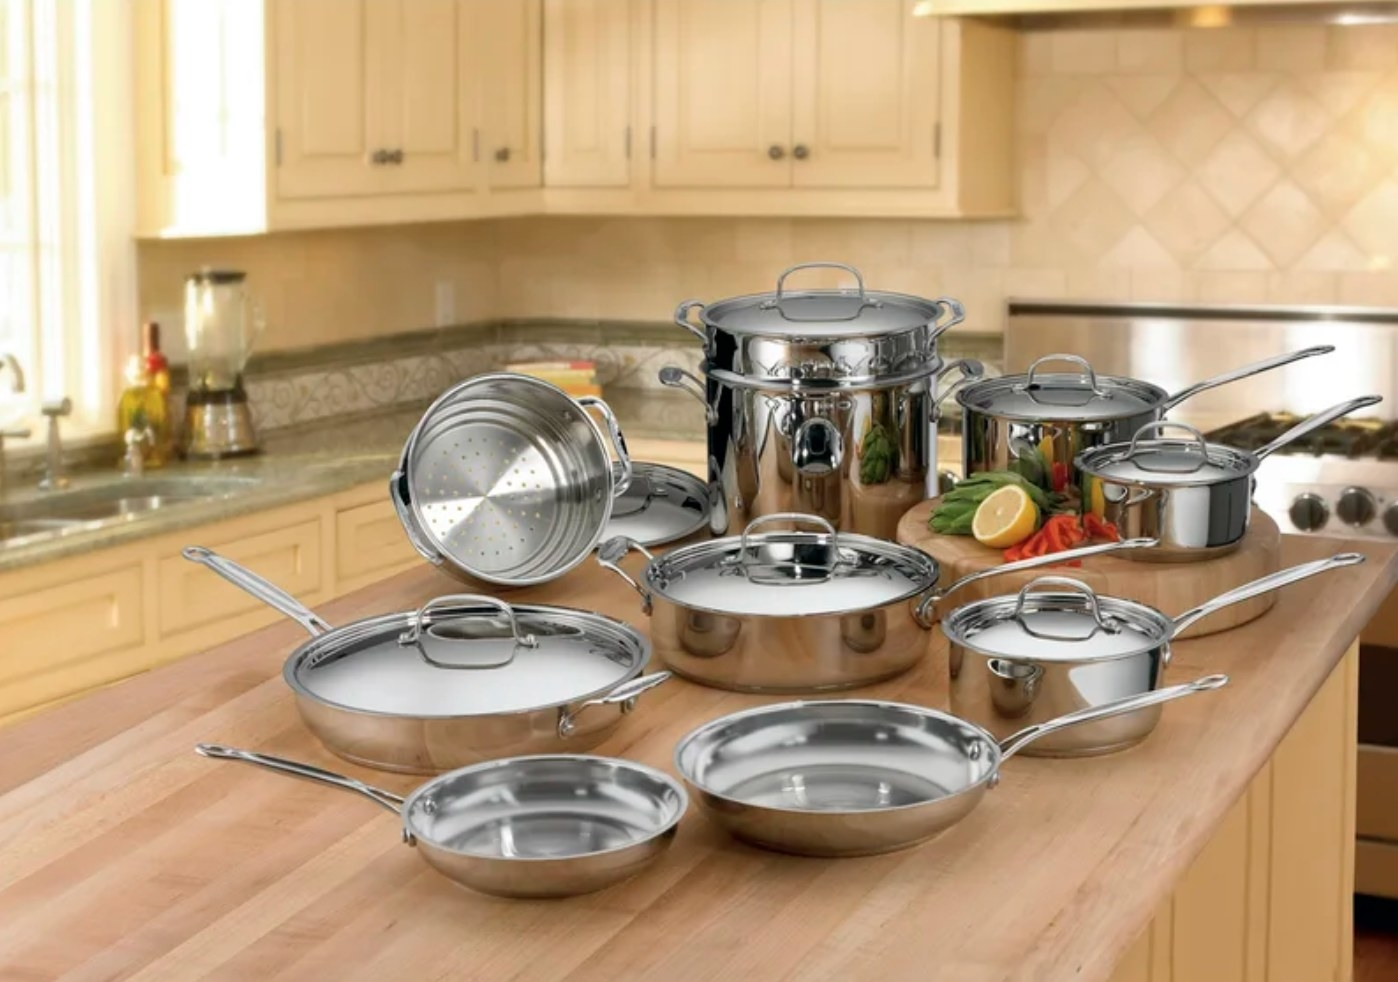 The 17 piece stainless steel cookware set